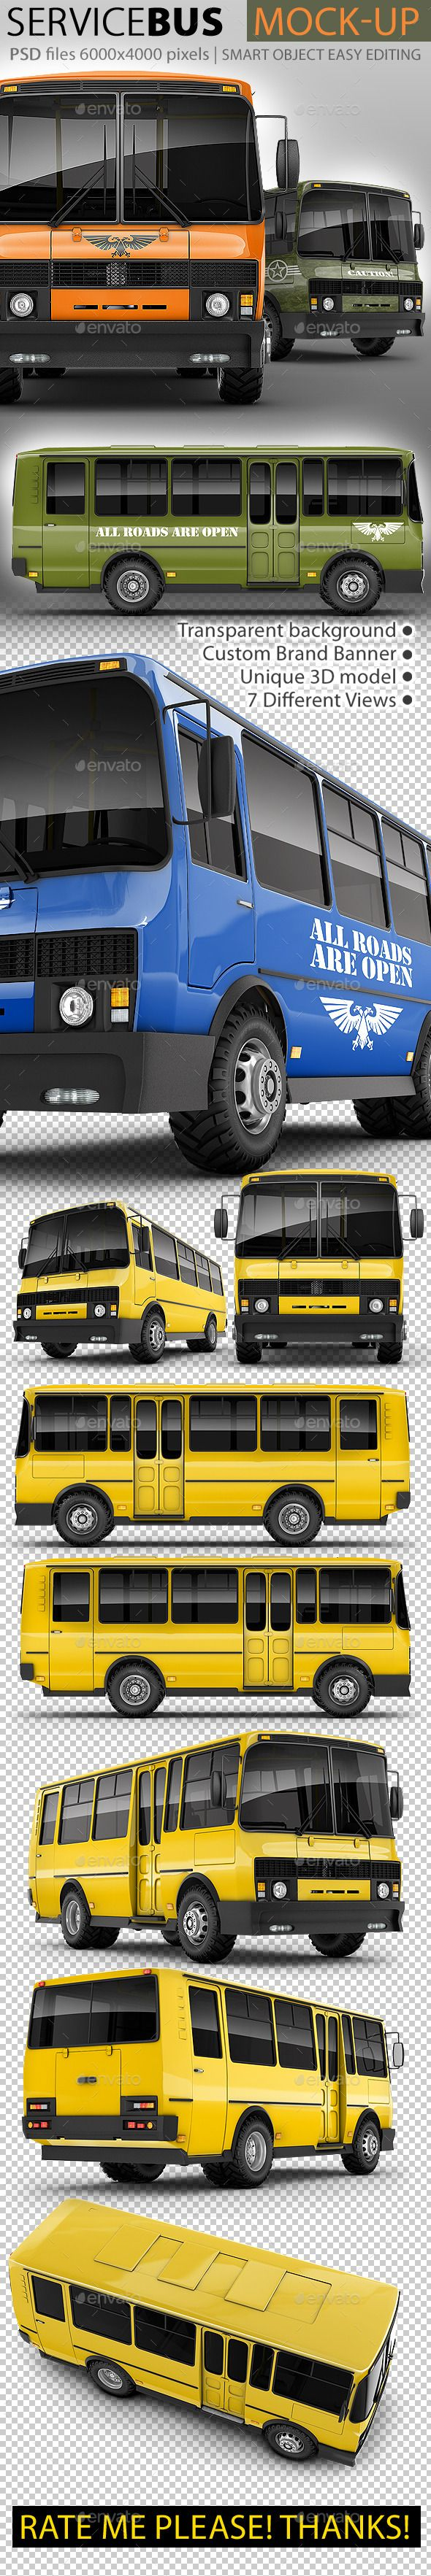 Service Bus Mockup — Photoshop PSD #student #pupil • Available here → https://graphicriver.net/item/service-bus-mockup/11454062?ref=pxcr